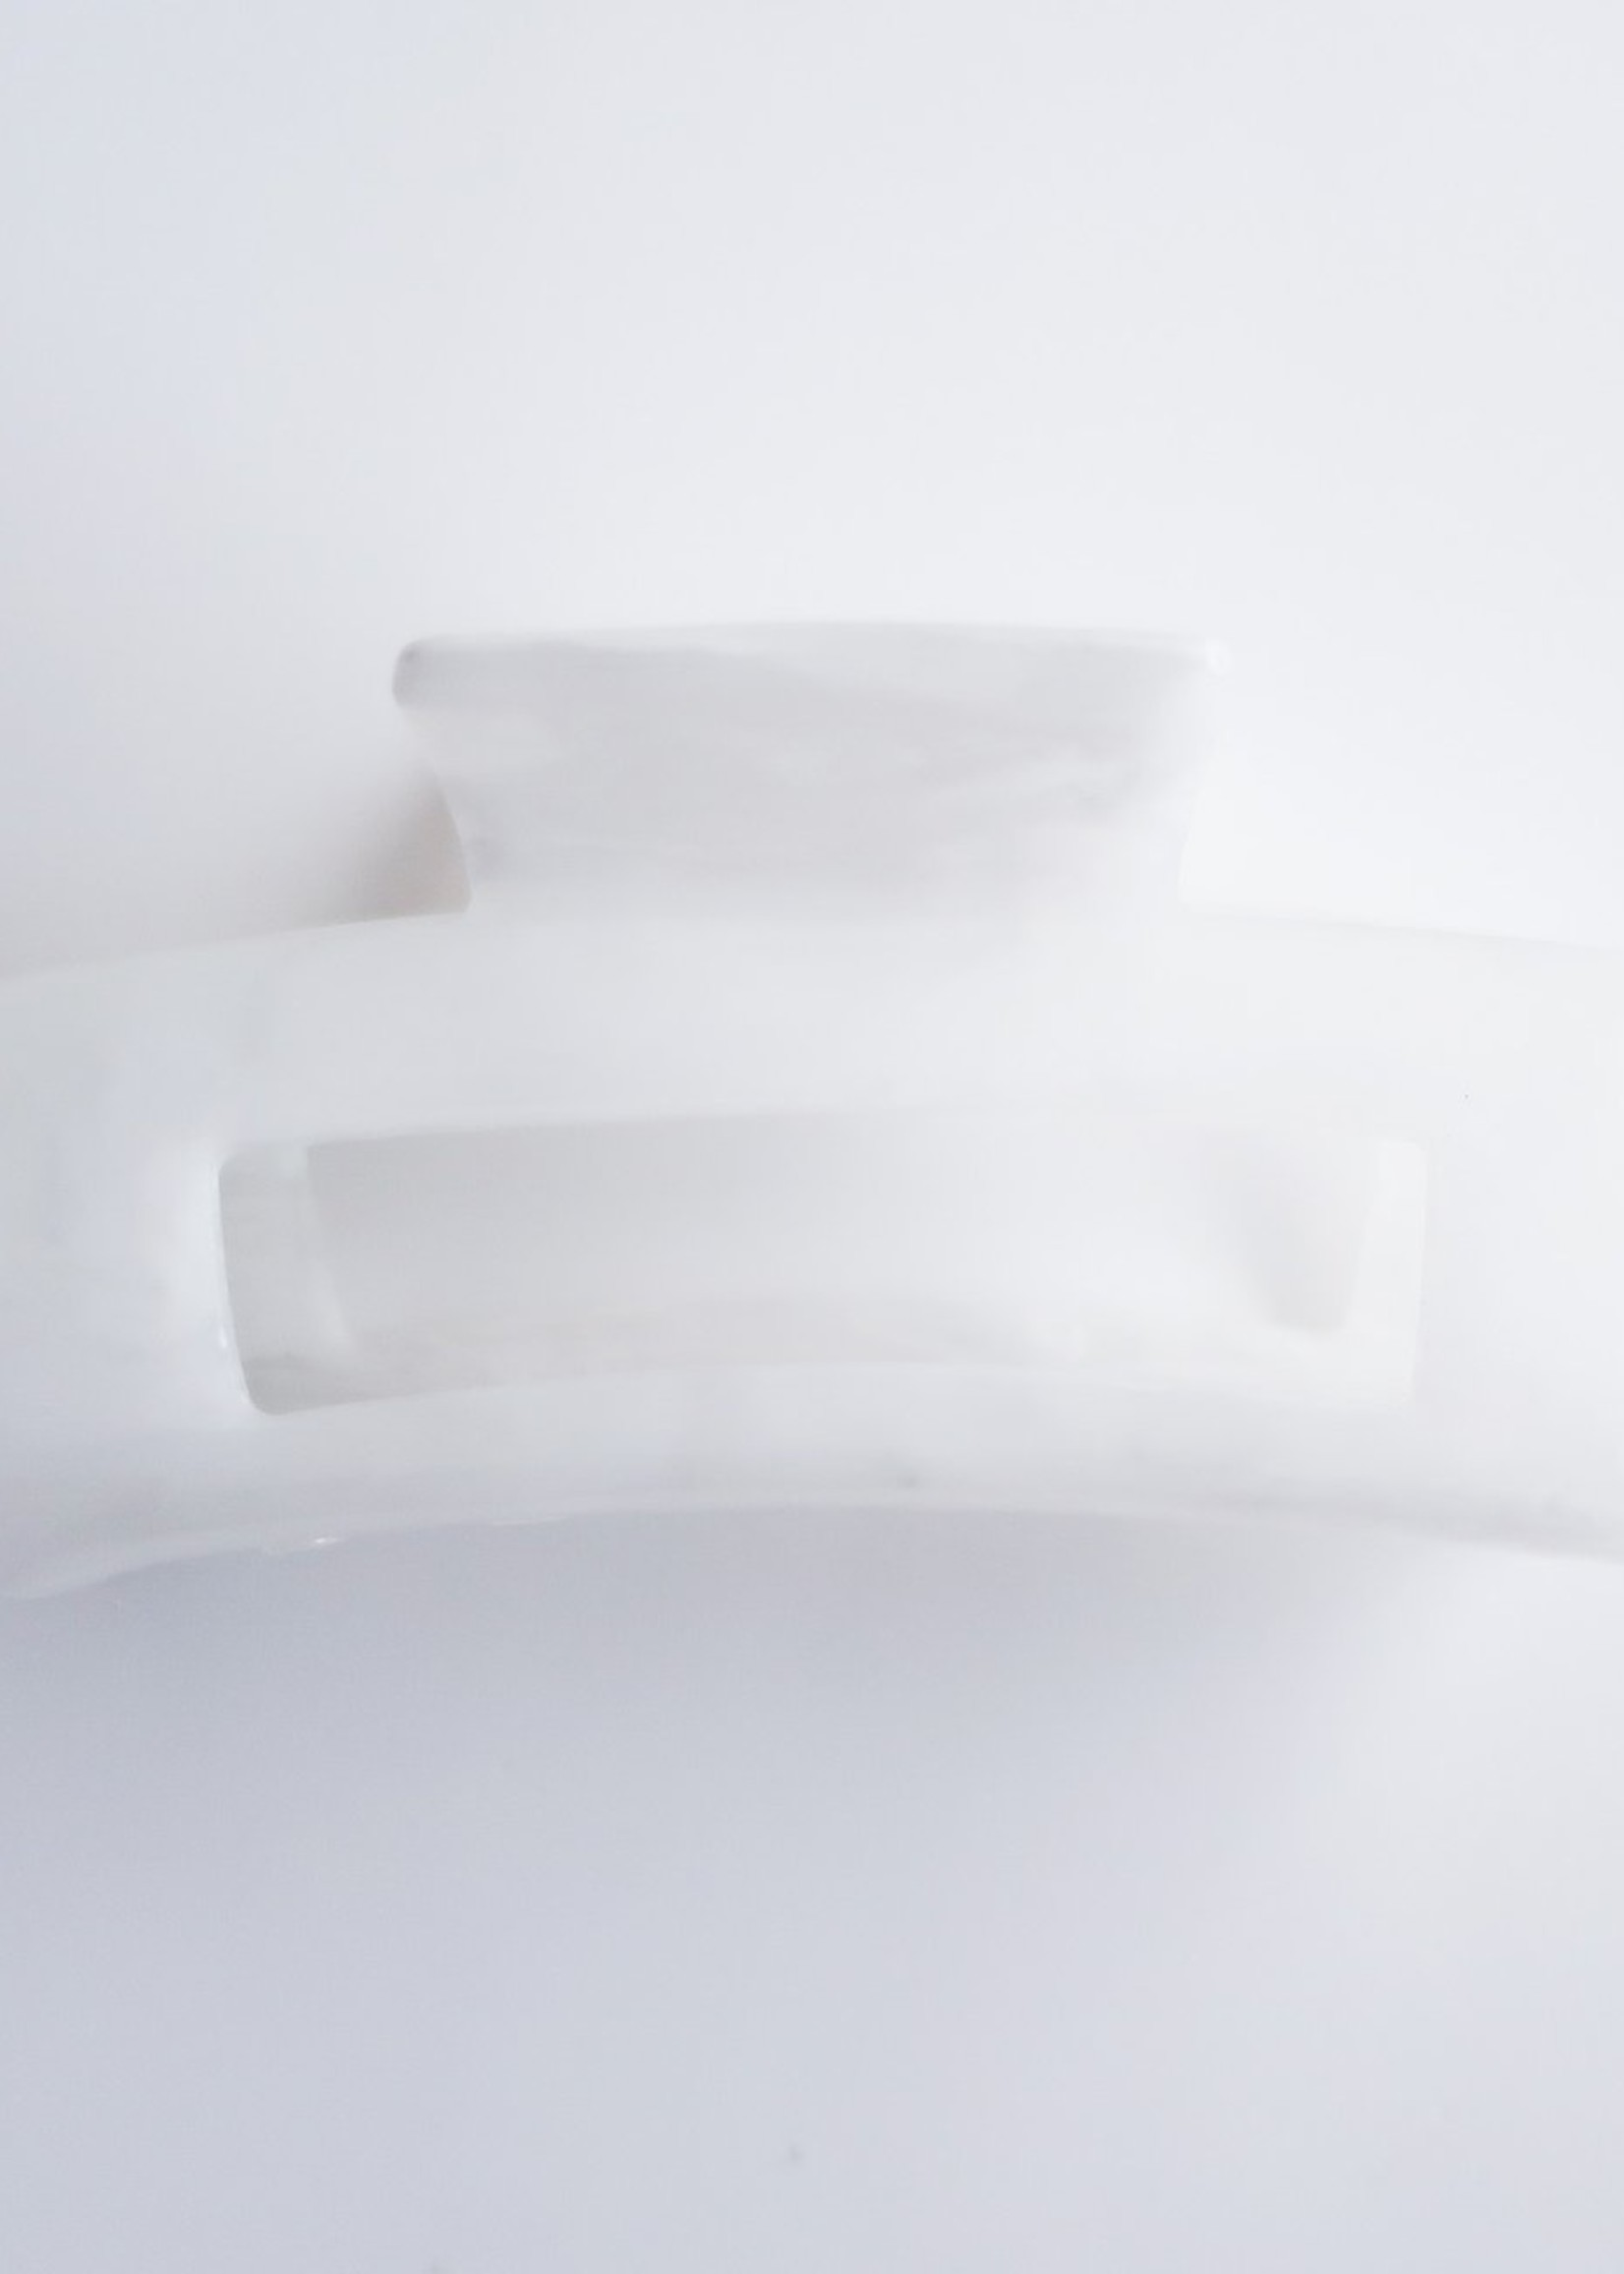 Large Claw Clips